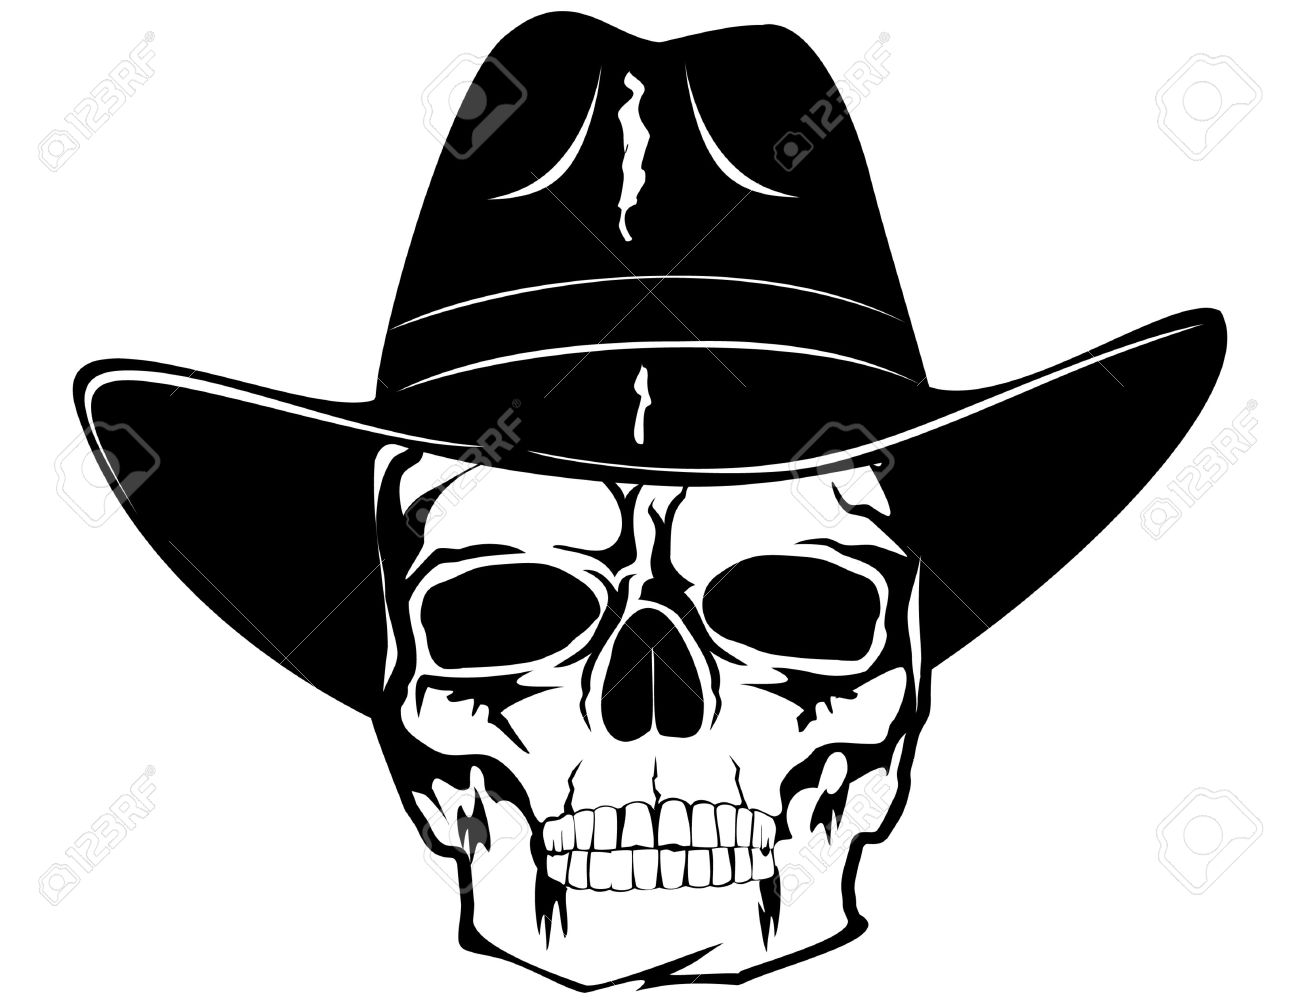 1300x1004 Cowboy Clipart Skull Free Collection Download And Share Cowboy